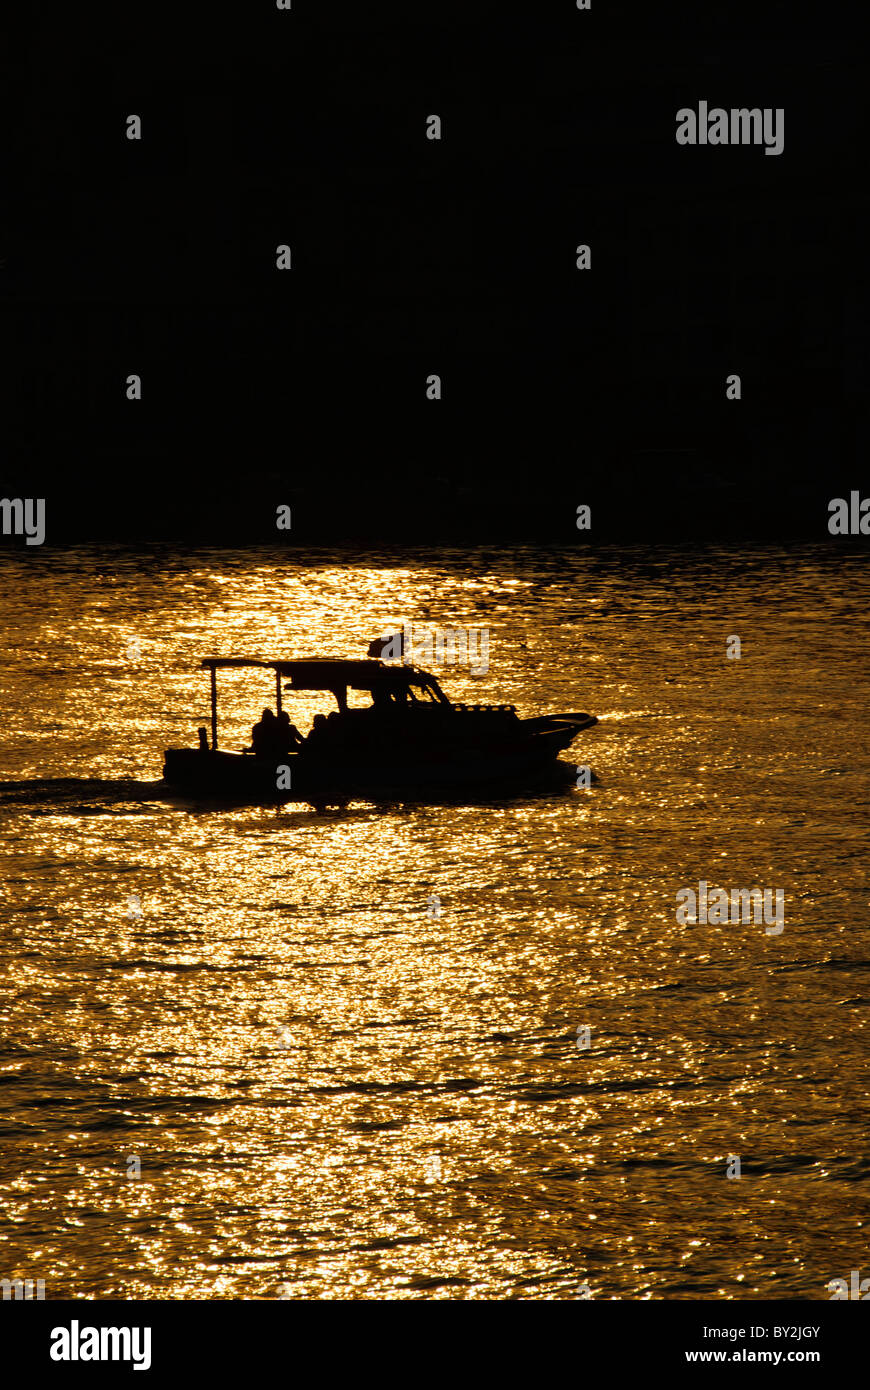 A small fishing boat is silhouetted against the glistening water of the Bosphorus during a golden sunset in Istanbul, - Stock Image